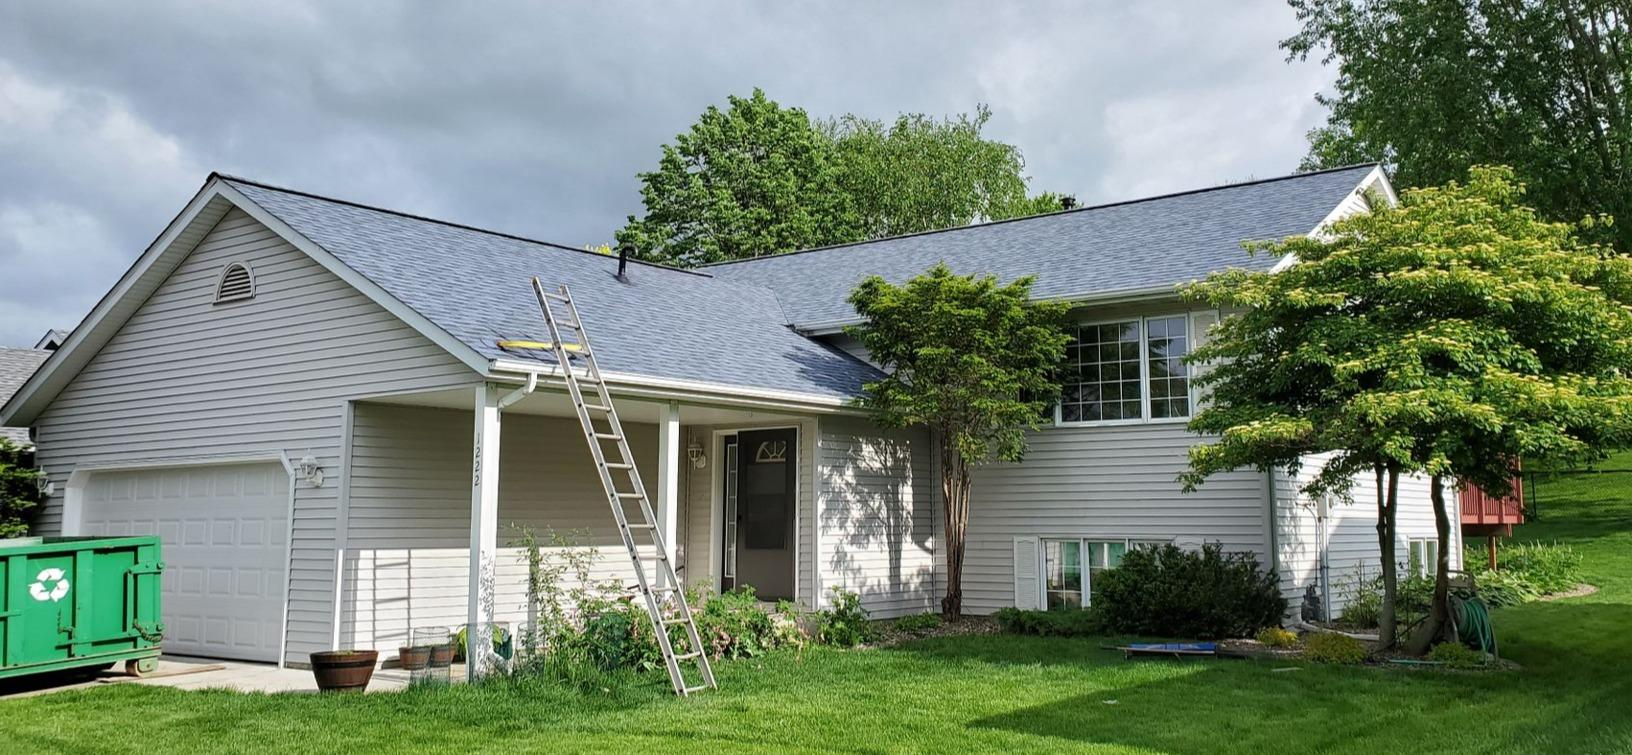 Hail Damage Roof Replacement in Rochester, MN - After Photo